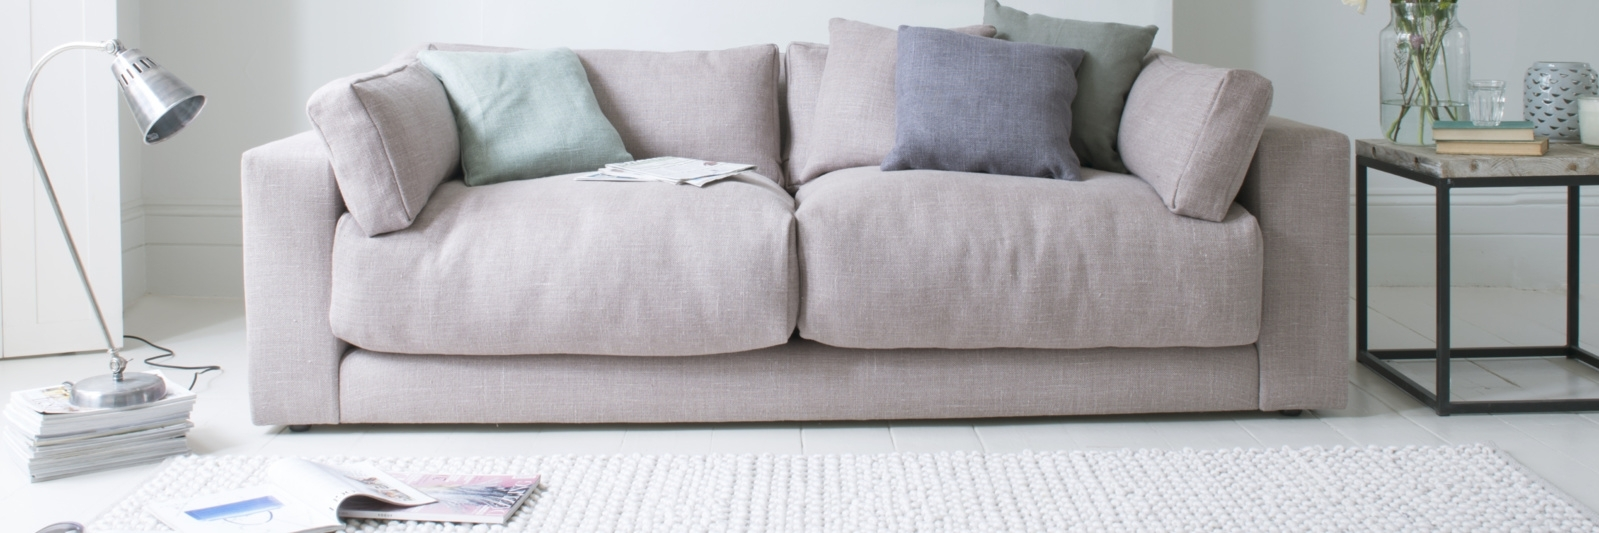 Sofas With Removable Arms | Loaf in Sofas With Removable Cover (Image 8 of 10)